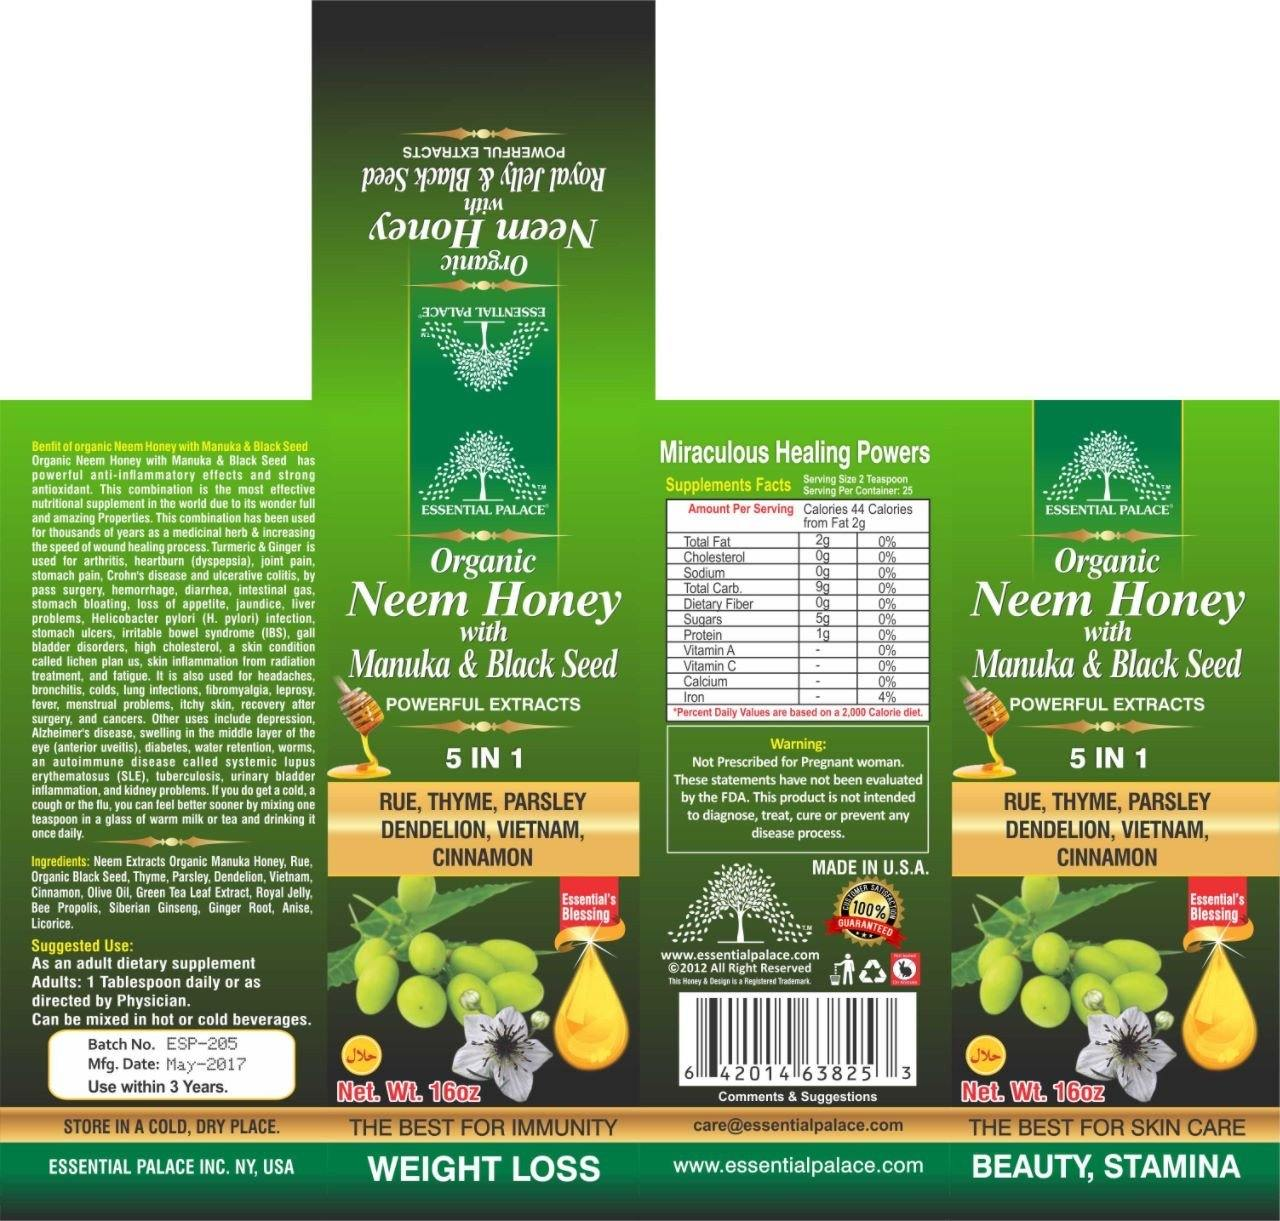 Organic Neem Honey with Manuka & Black Seed - Life Gardening Tools LLC